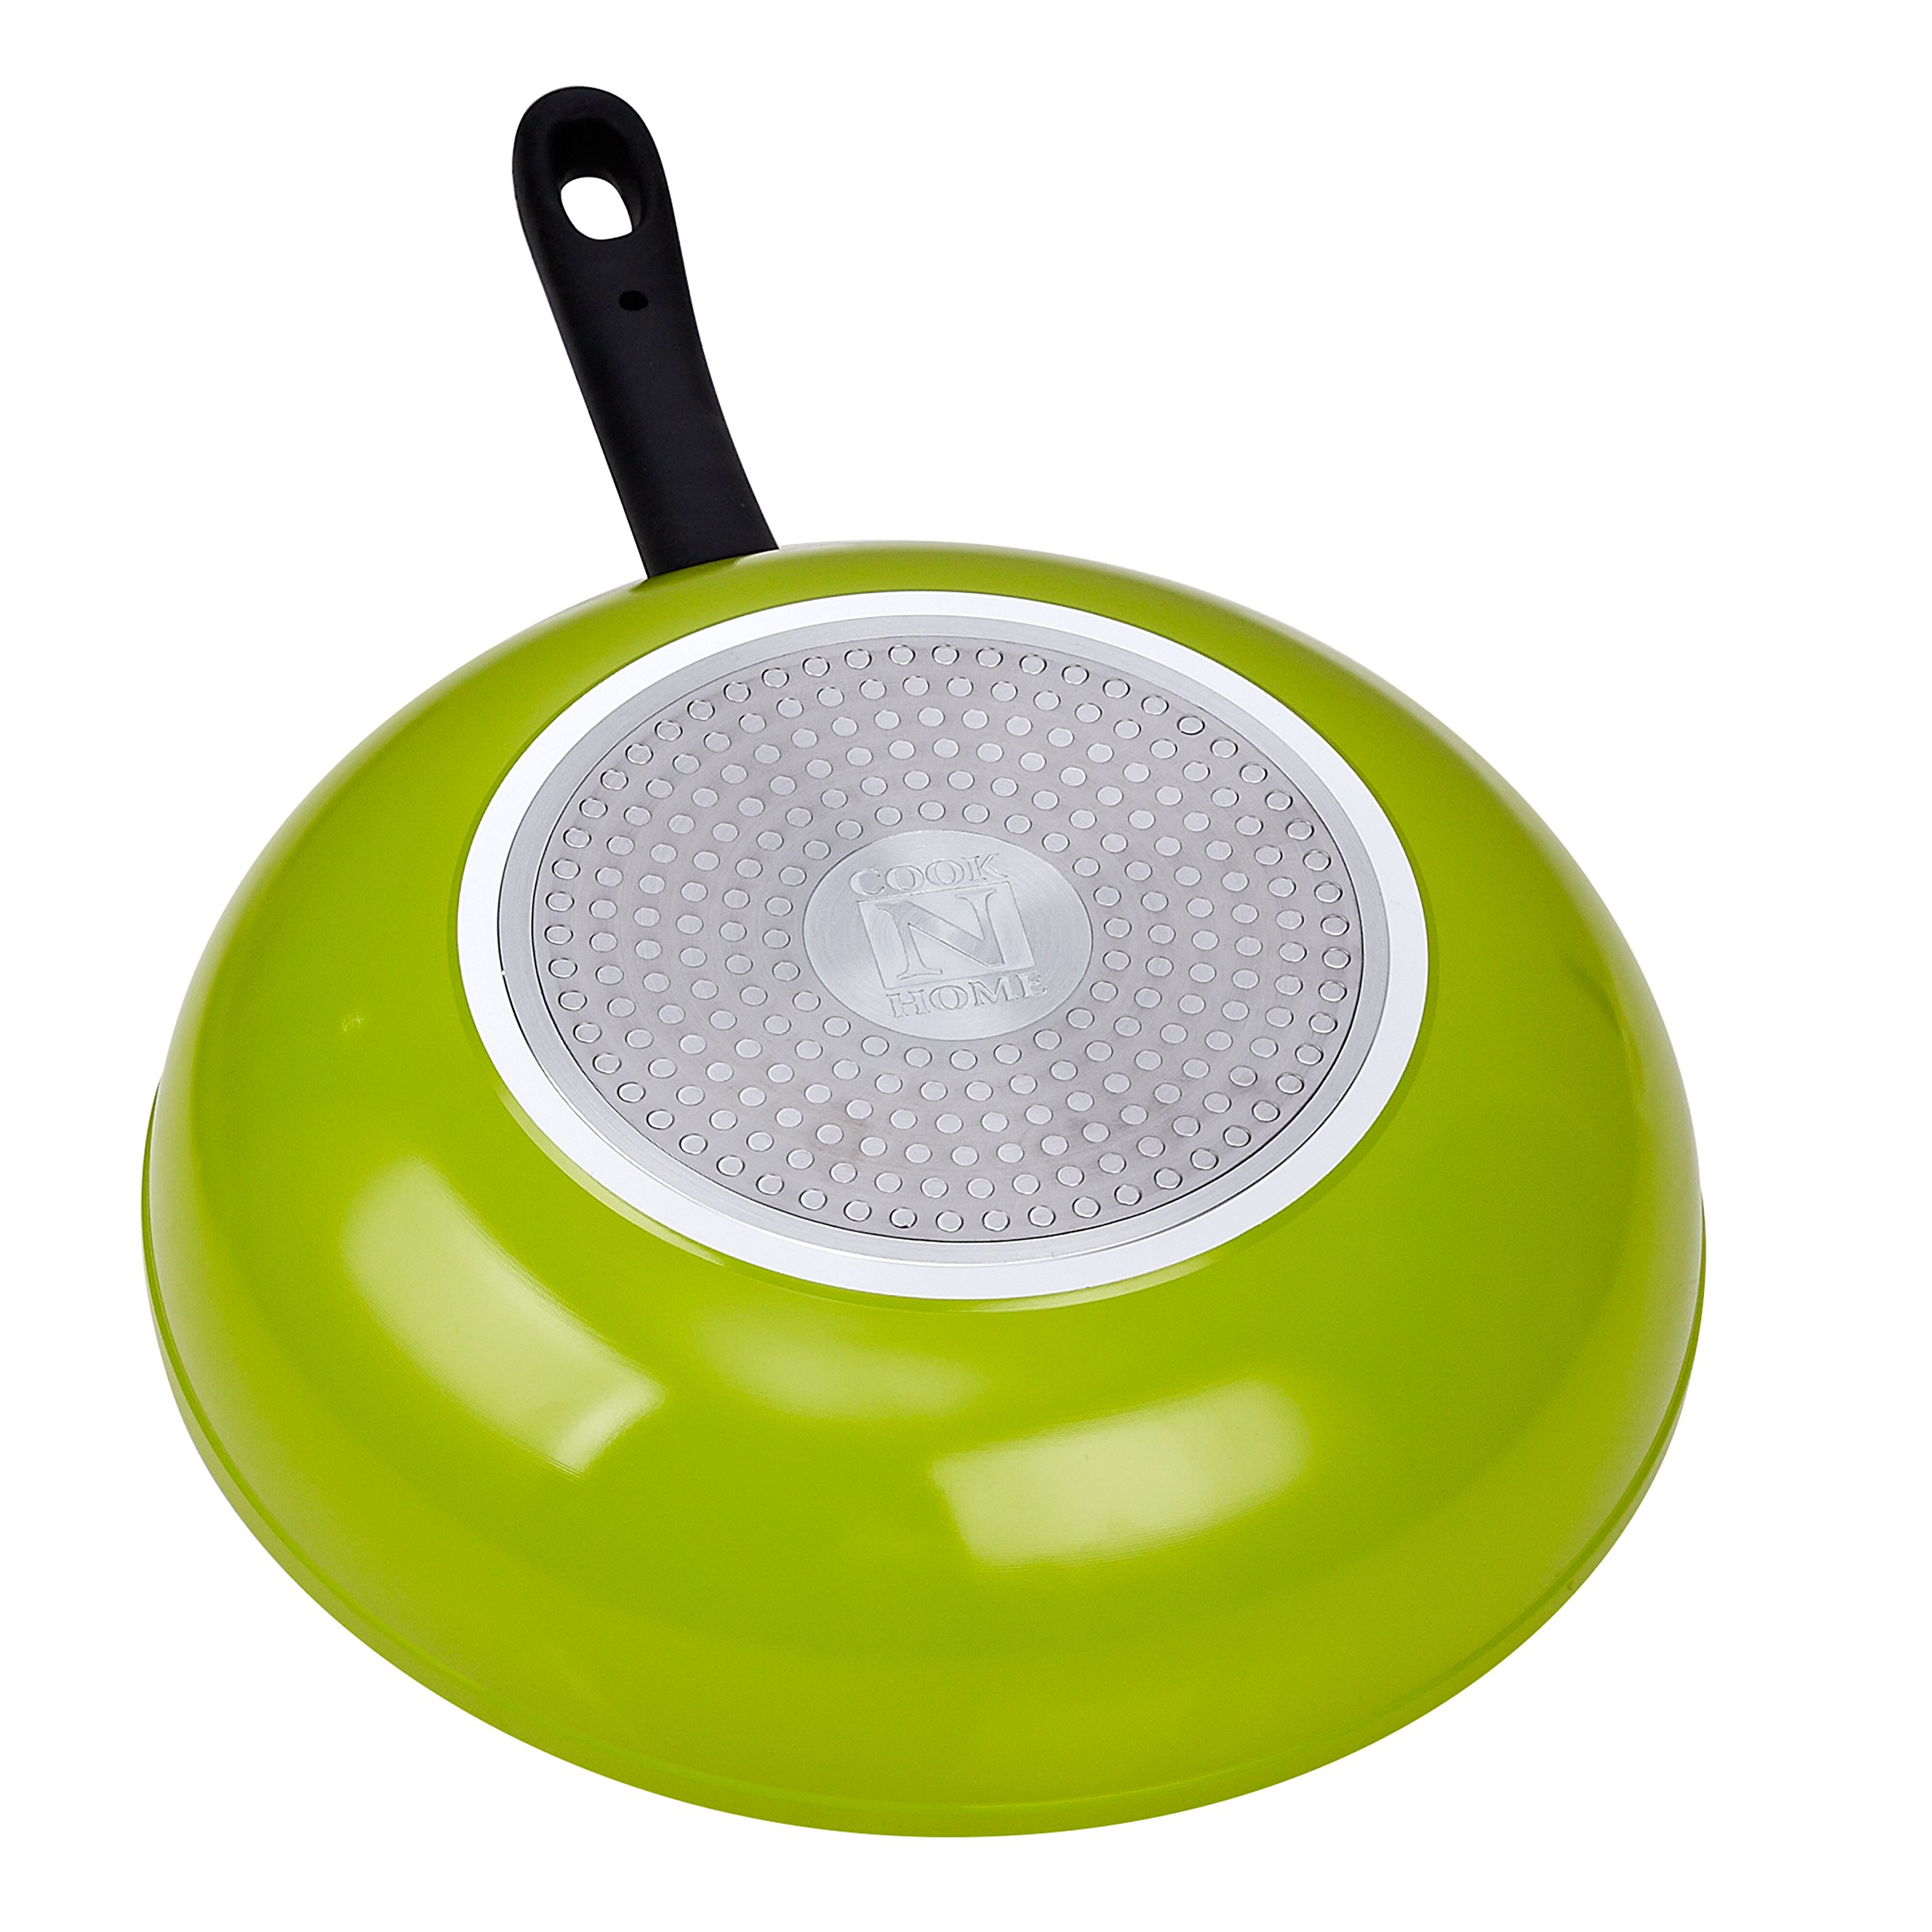 Cook N Home 12-Inch Nonstick Stir Fry Wok Pan, Green, 30cm by Cook N Home (Image #2)